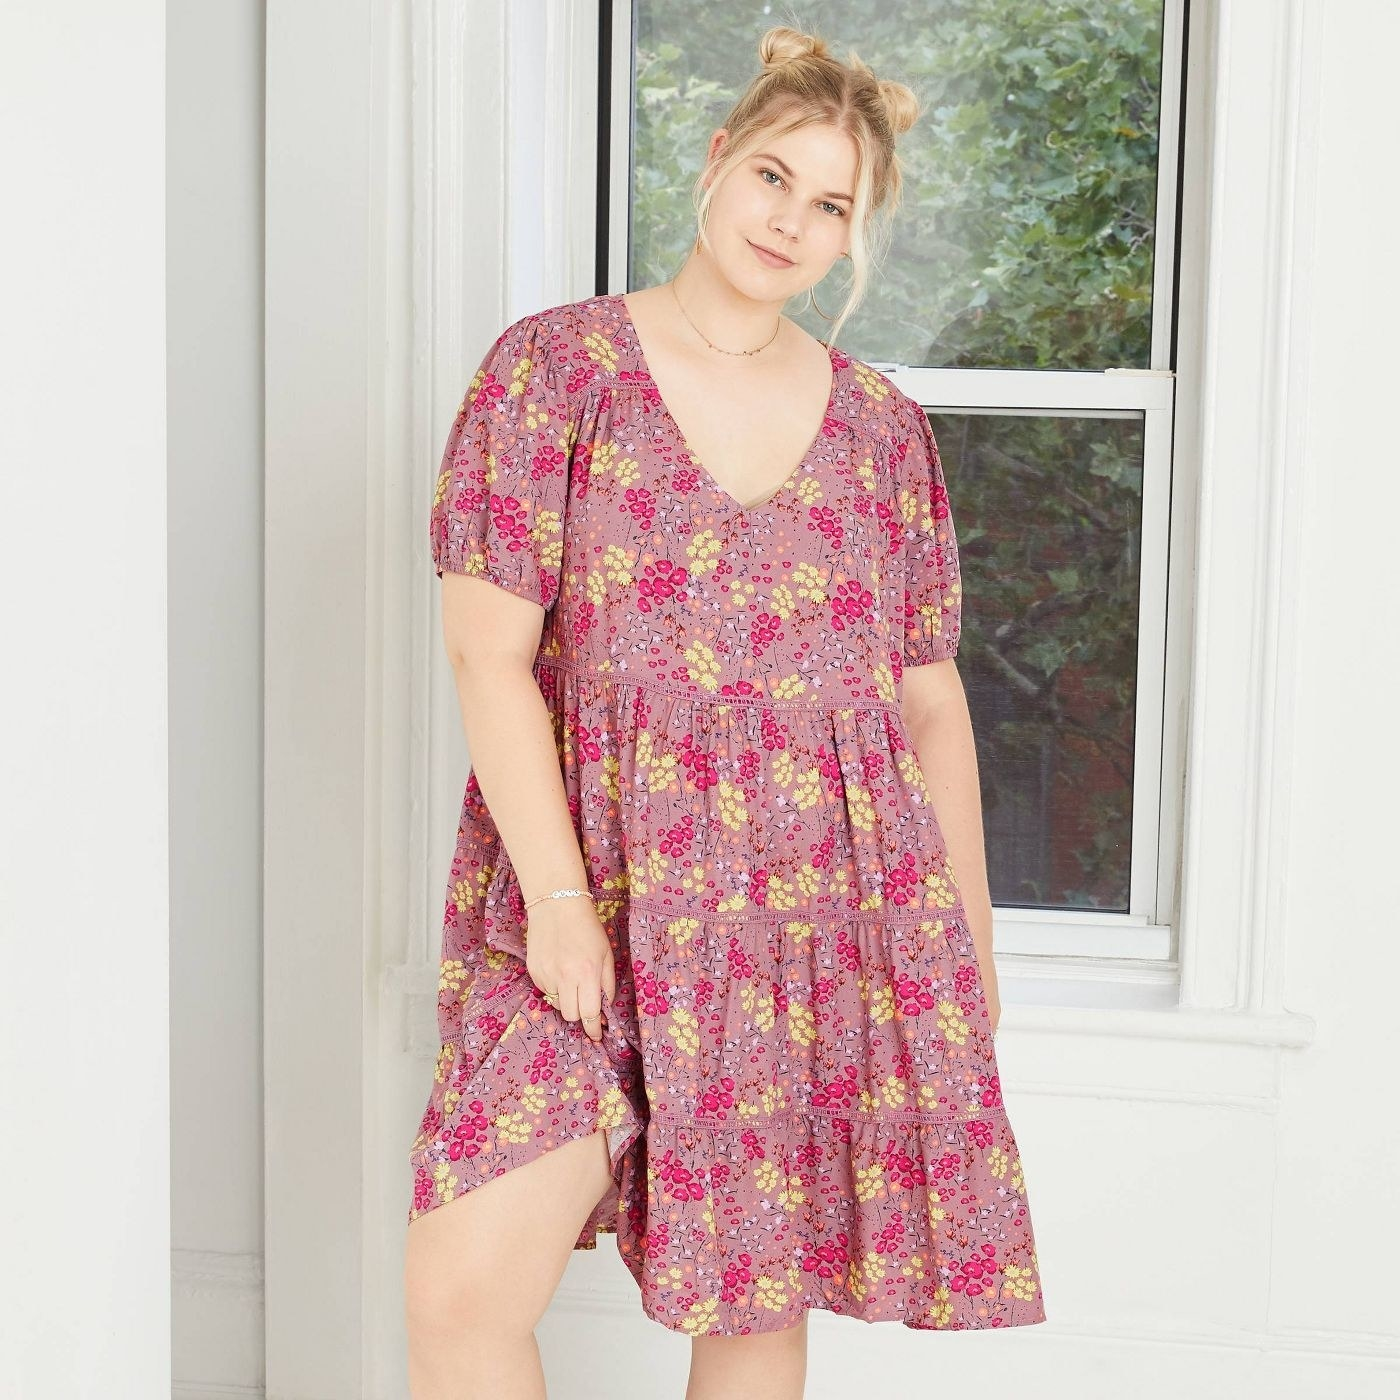 A model wearing the short-sleeve pink and yellow floral dress that hits just above the knee